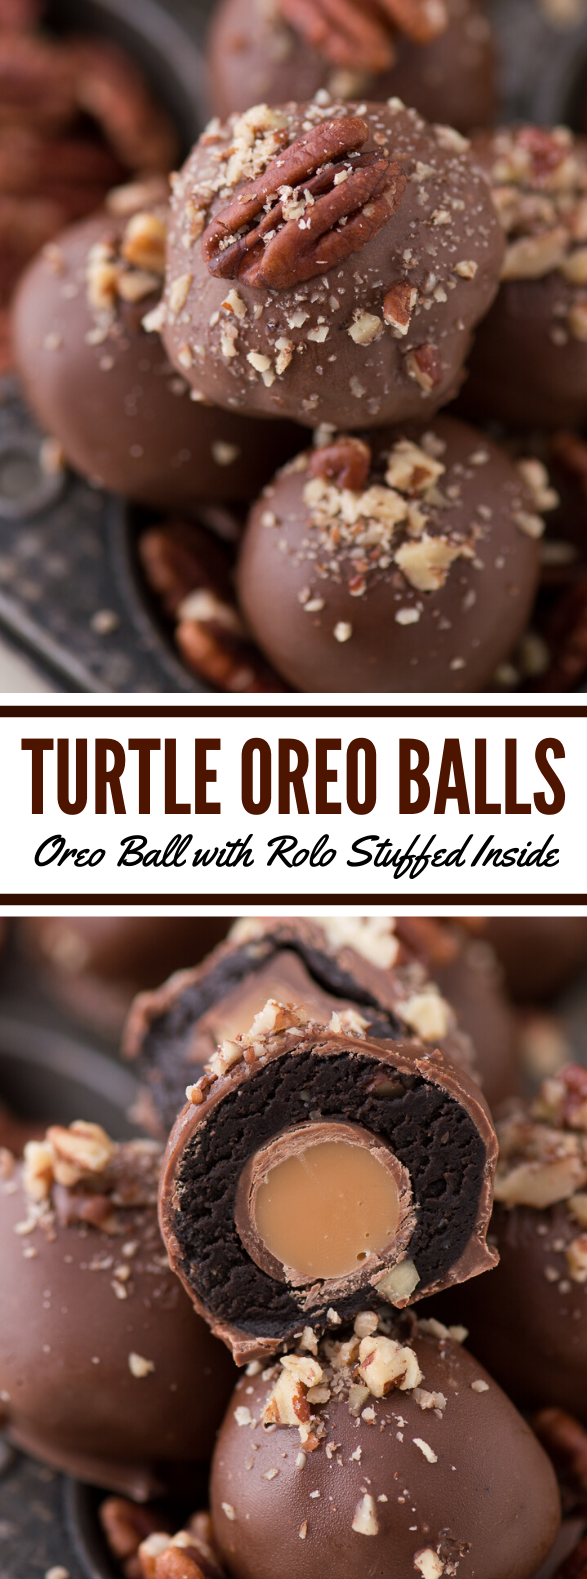 Turtle Oreo Balls #chocolate #dessert